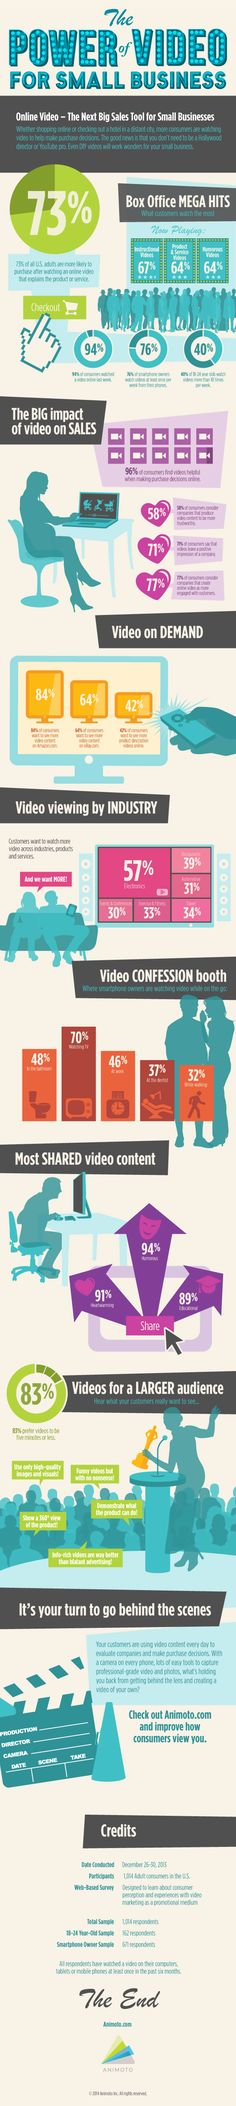 Video Helps Persuade 73% of People to Buy a Product or Service (Infographic) #smallbusiness #marketing                                                                                                                                                                                 More